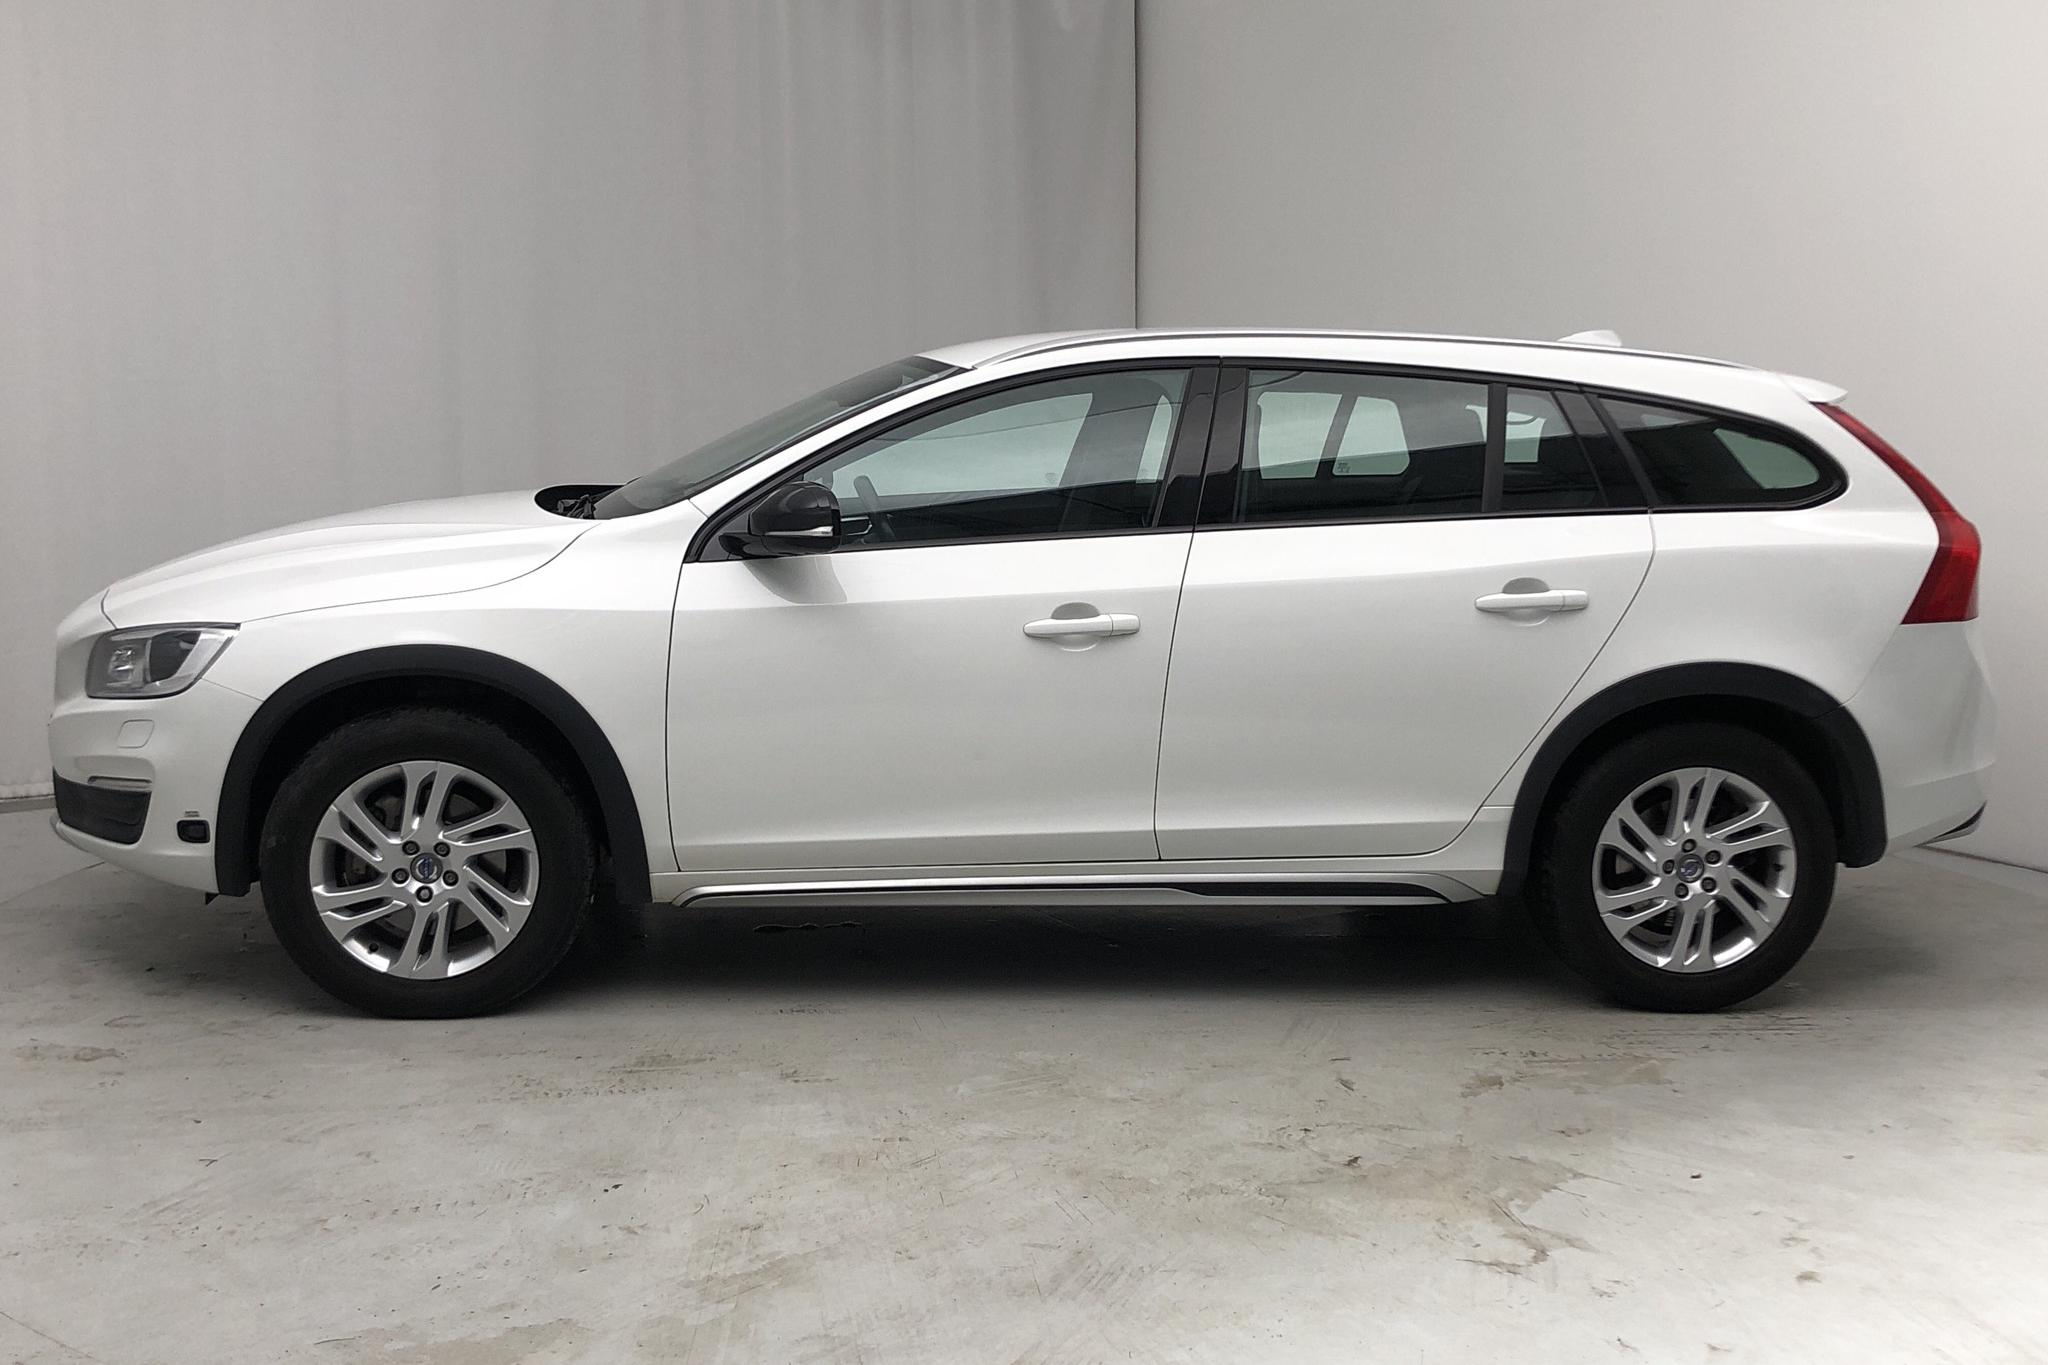 Volvo V60 D3 Cross Country (150hk) - 0 km - Automatic - white - 2018